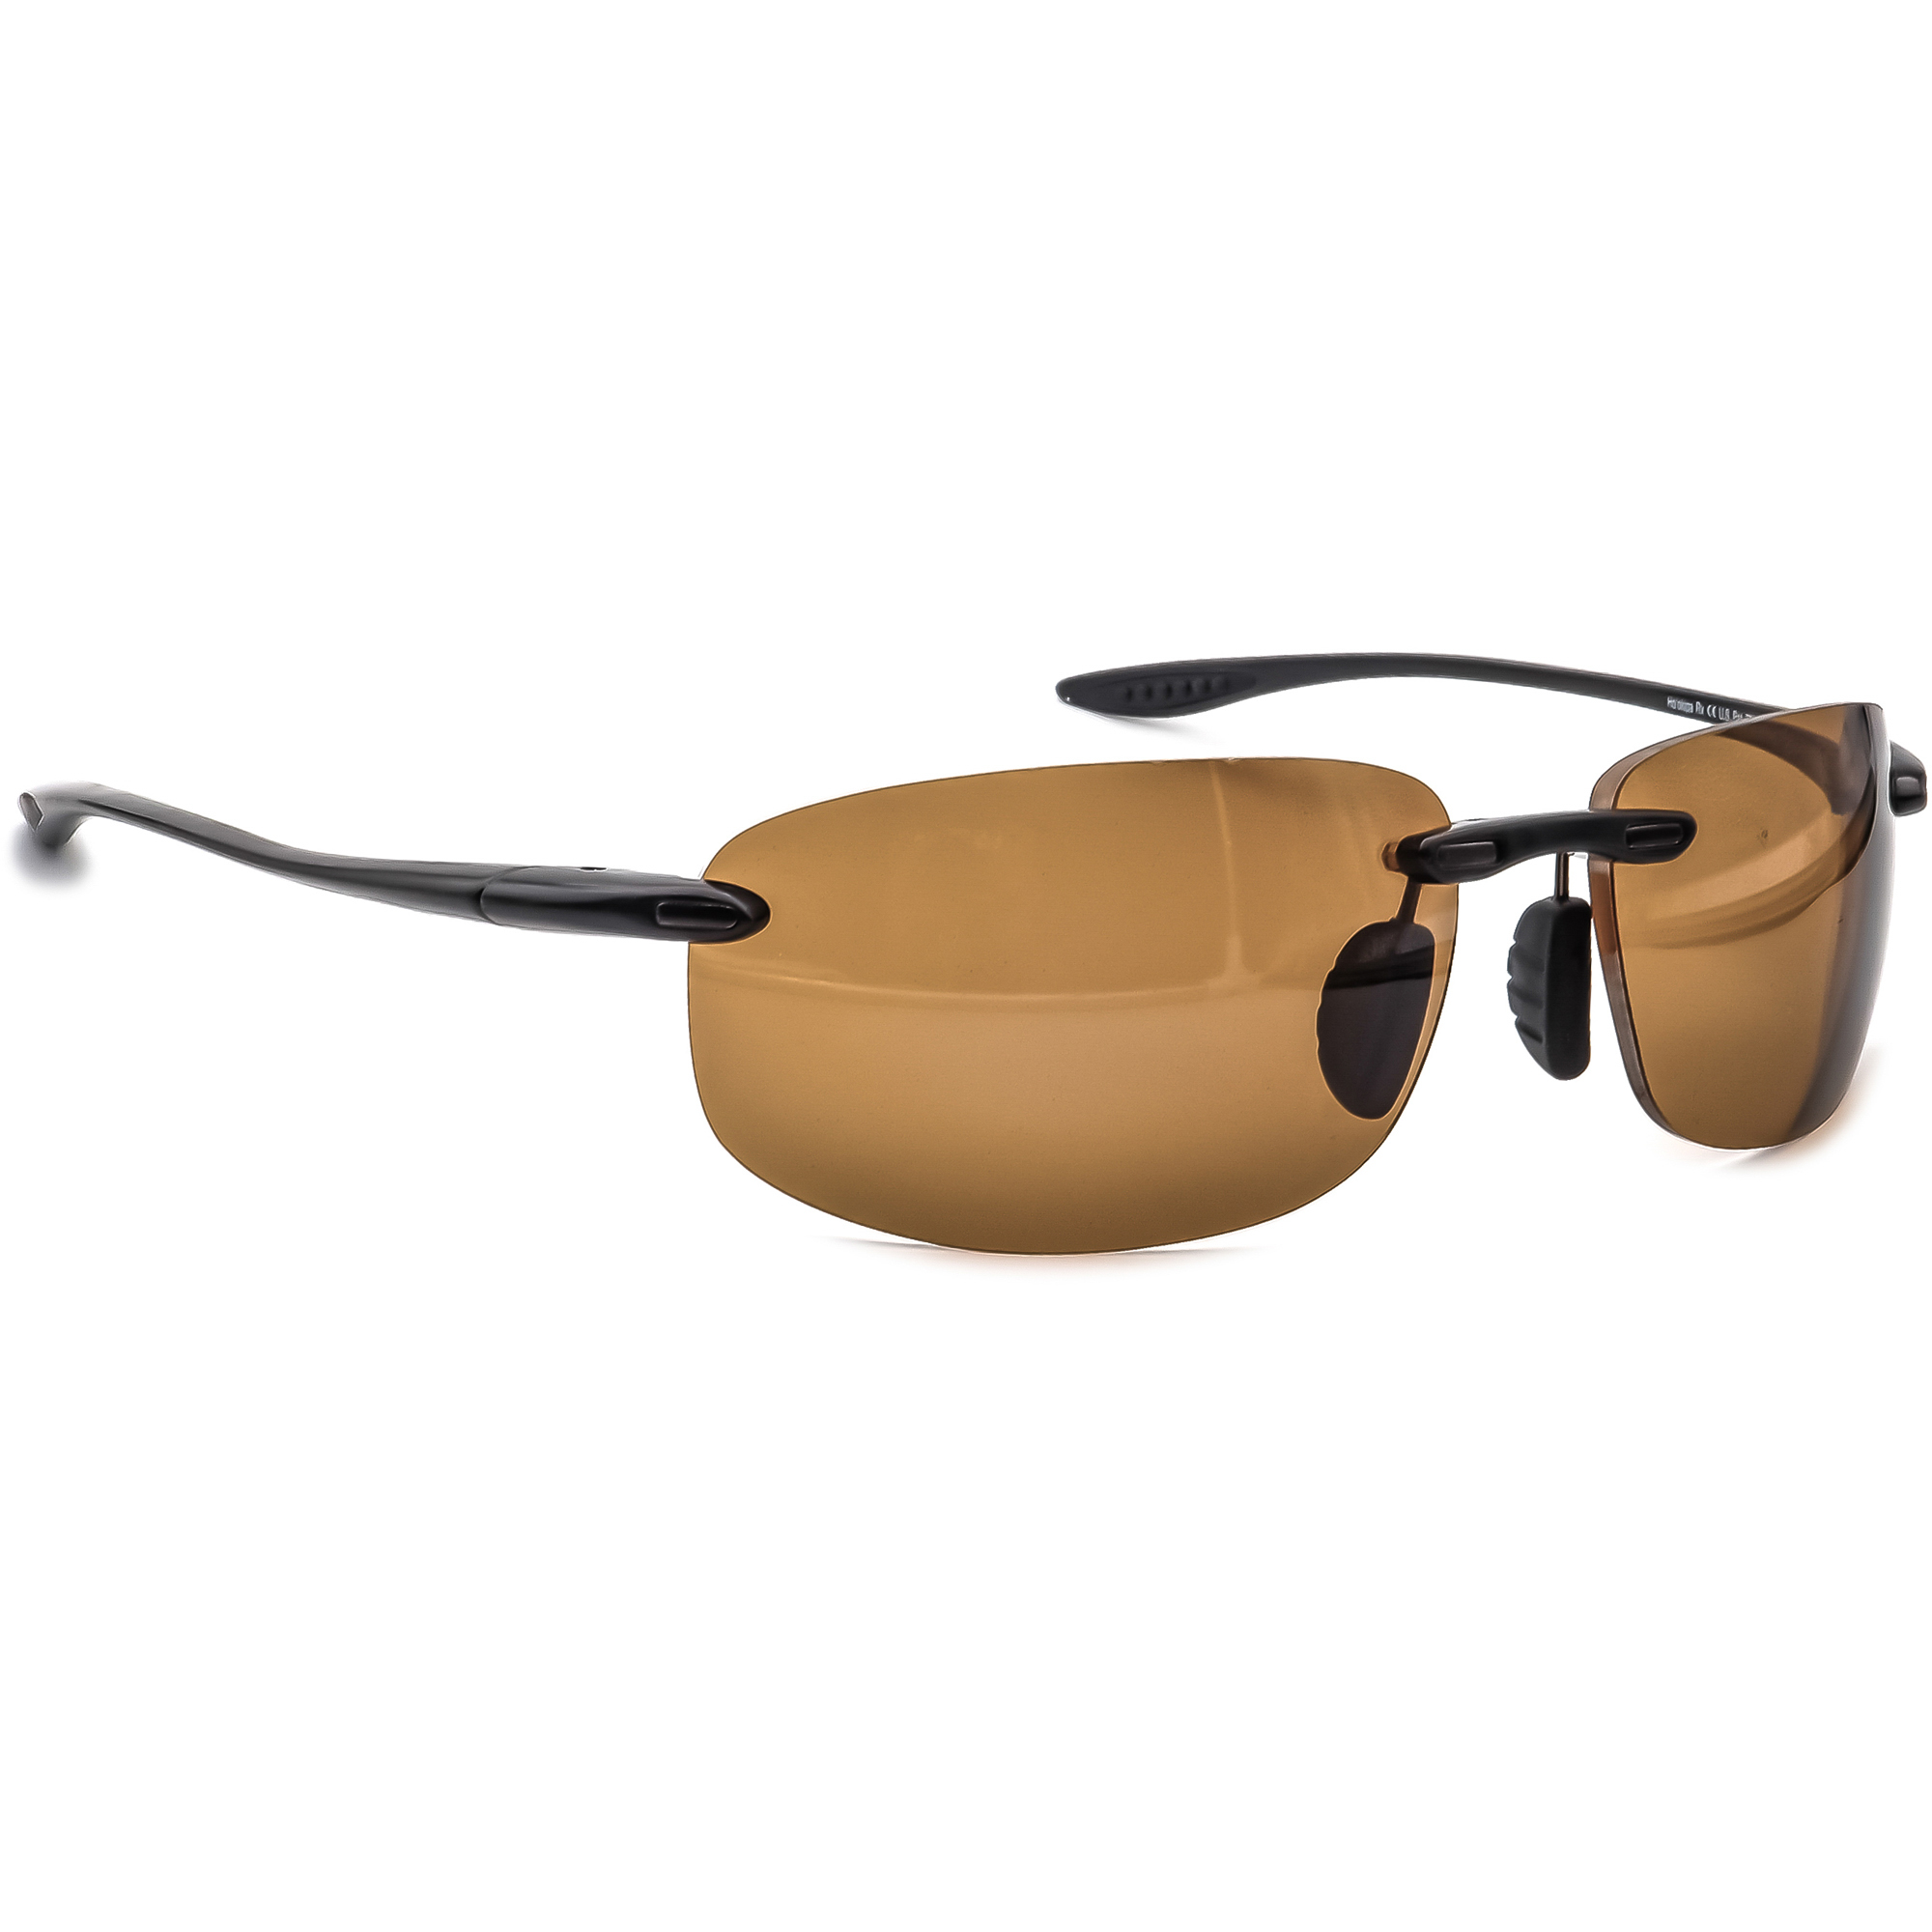 Maui Jim MJ-907-02 Ho'okipa Rx MJ Sport Sunglasses Frame Only